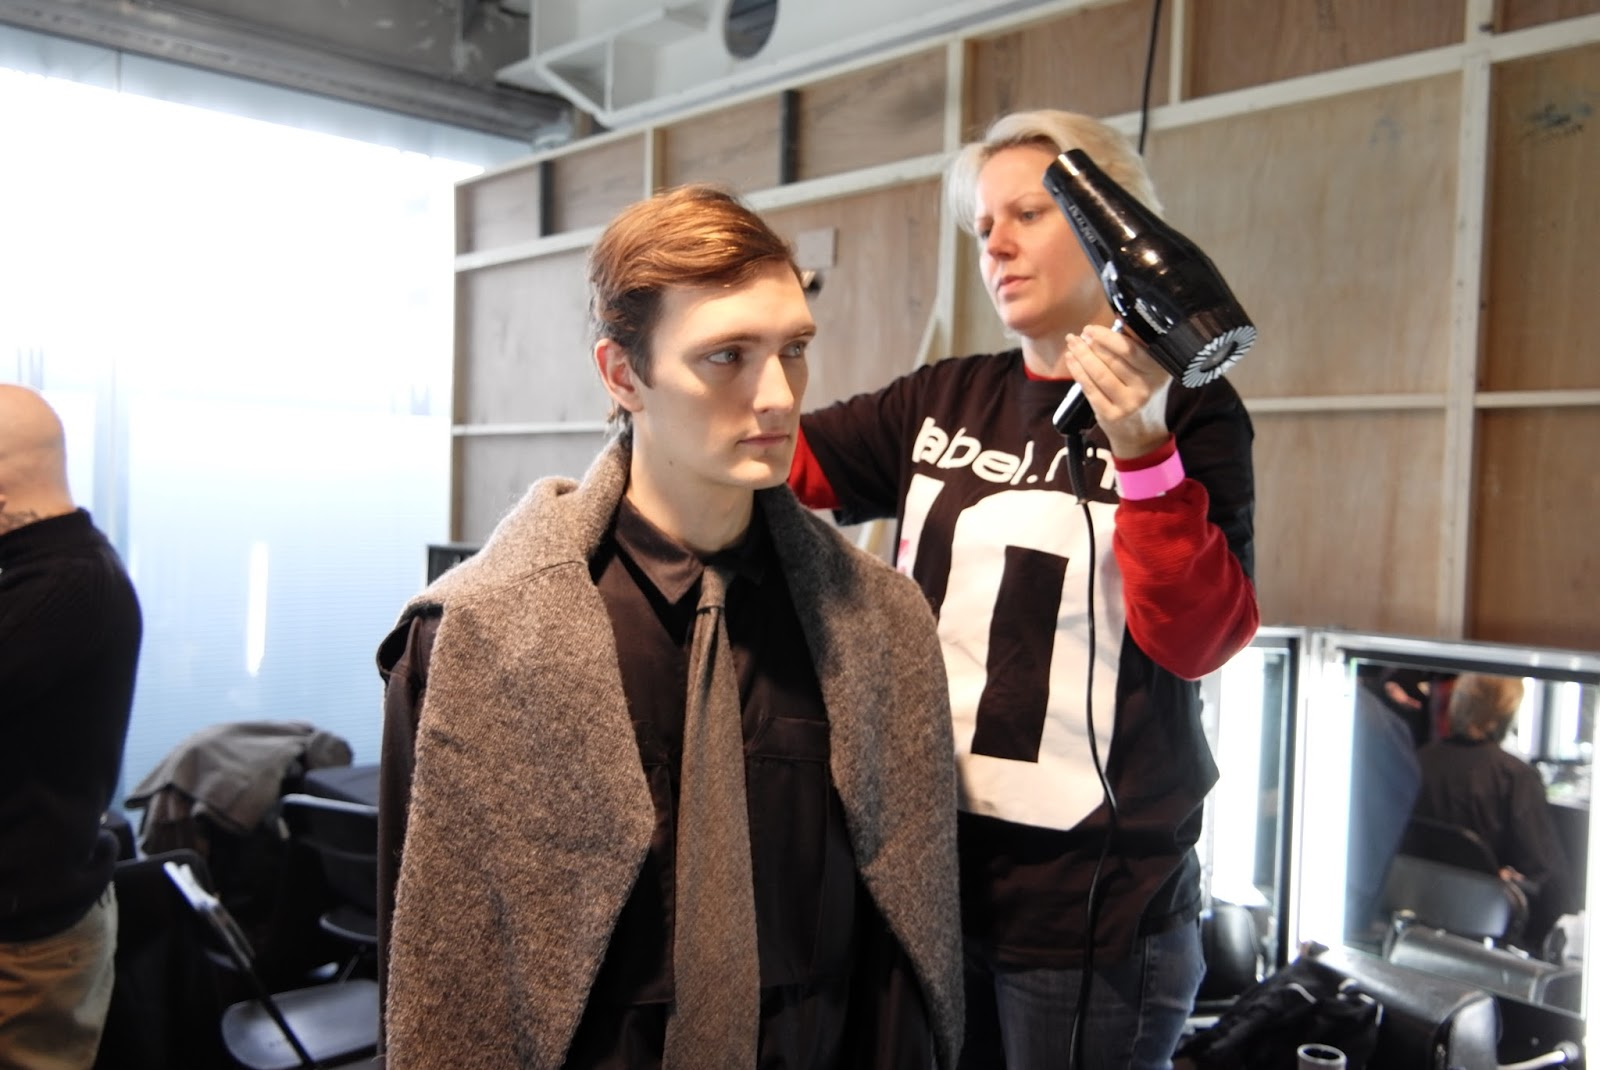 Backstage of the E. Tautz LCM AW16 show.